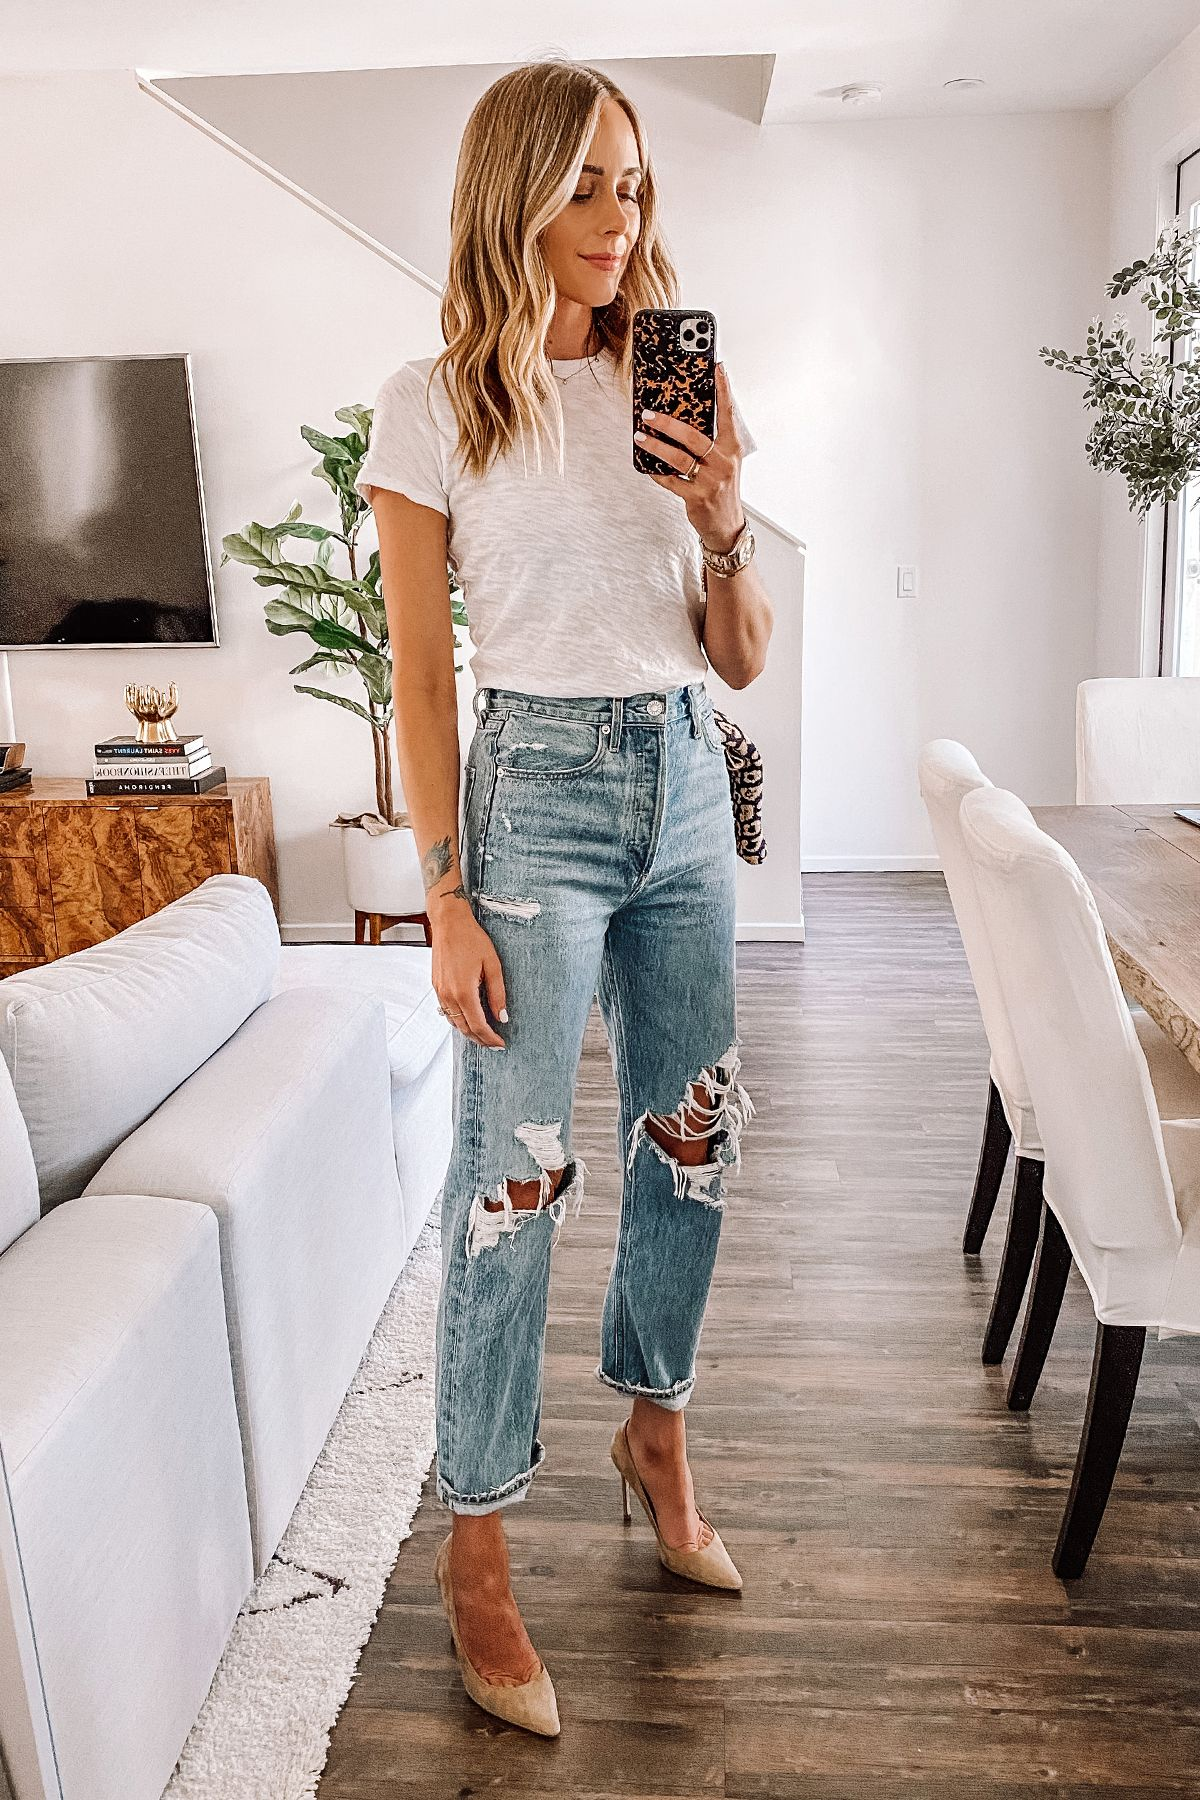 Photo of Ripped Jeans, Jeans and t-shirt, Easy outfit, heels and Jean